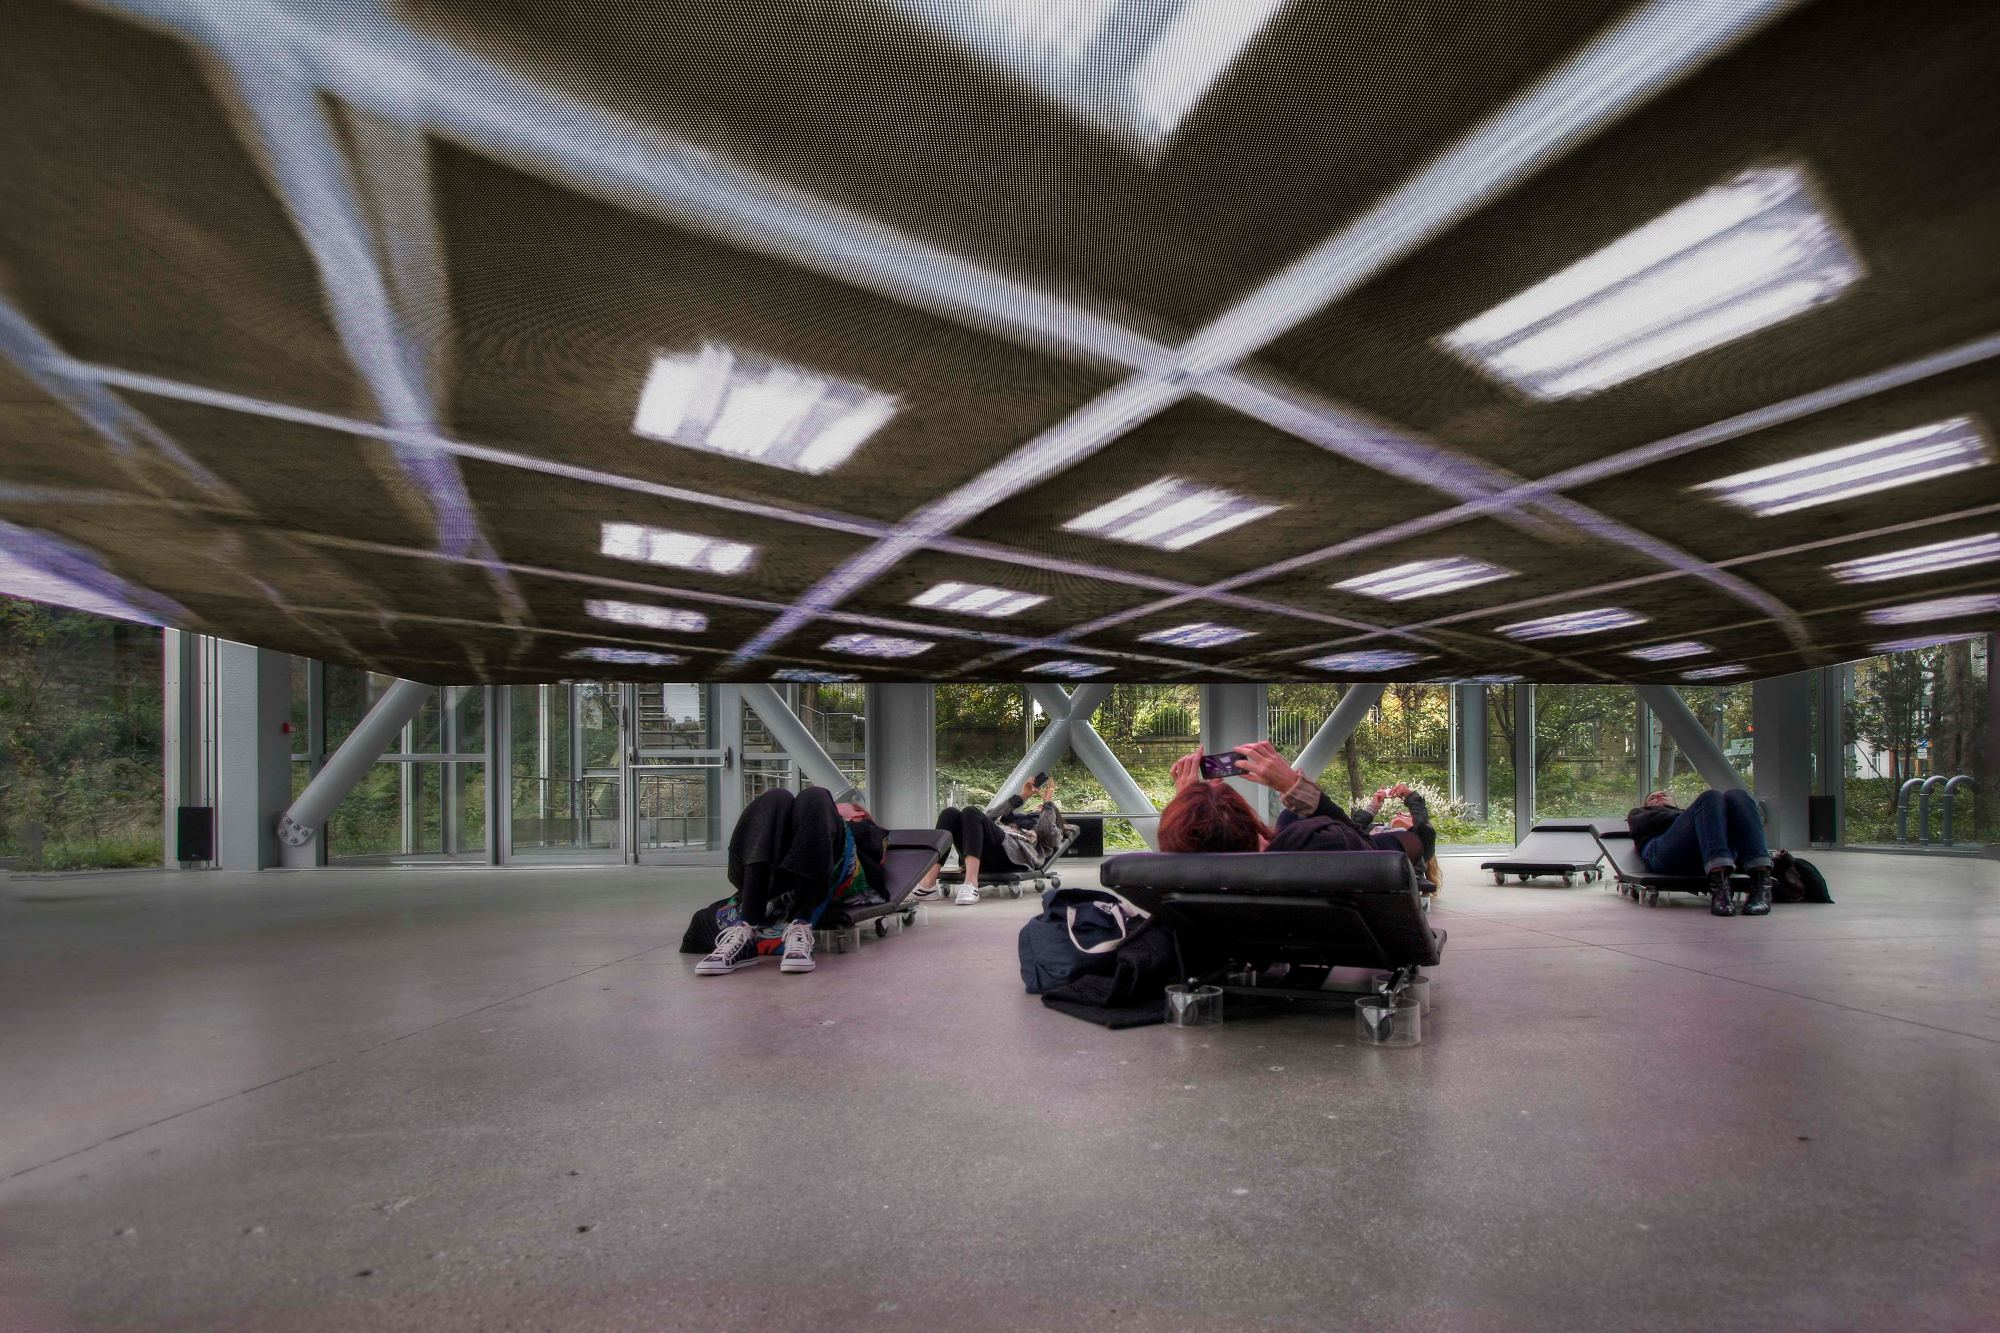 Diller Scofidio + Renfro, photo Trevor Lamphier courtesy Fondation Cartier pour l'art contemporain